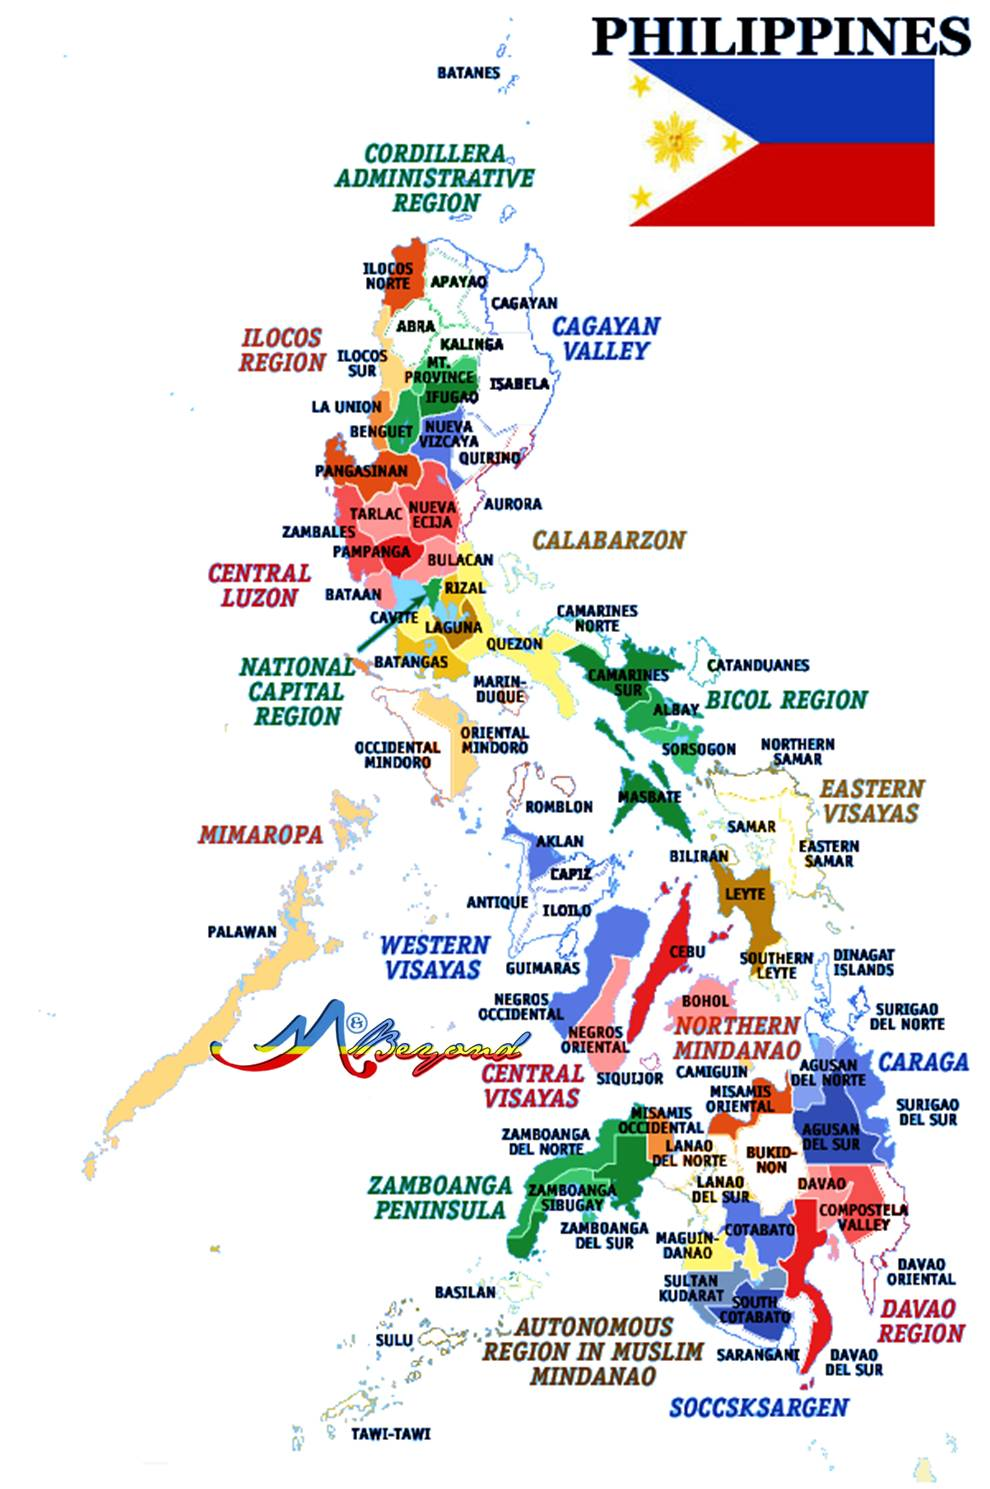 philippine map, map philippines, around the philippines guide, philippine travel blogger, travel blogger philippines